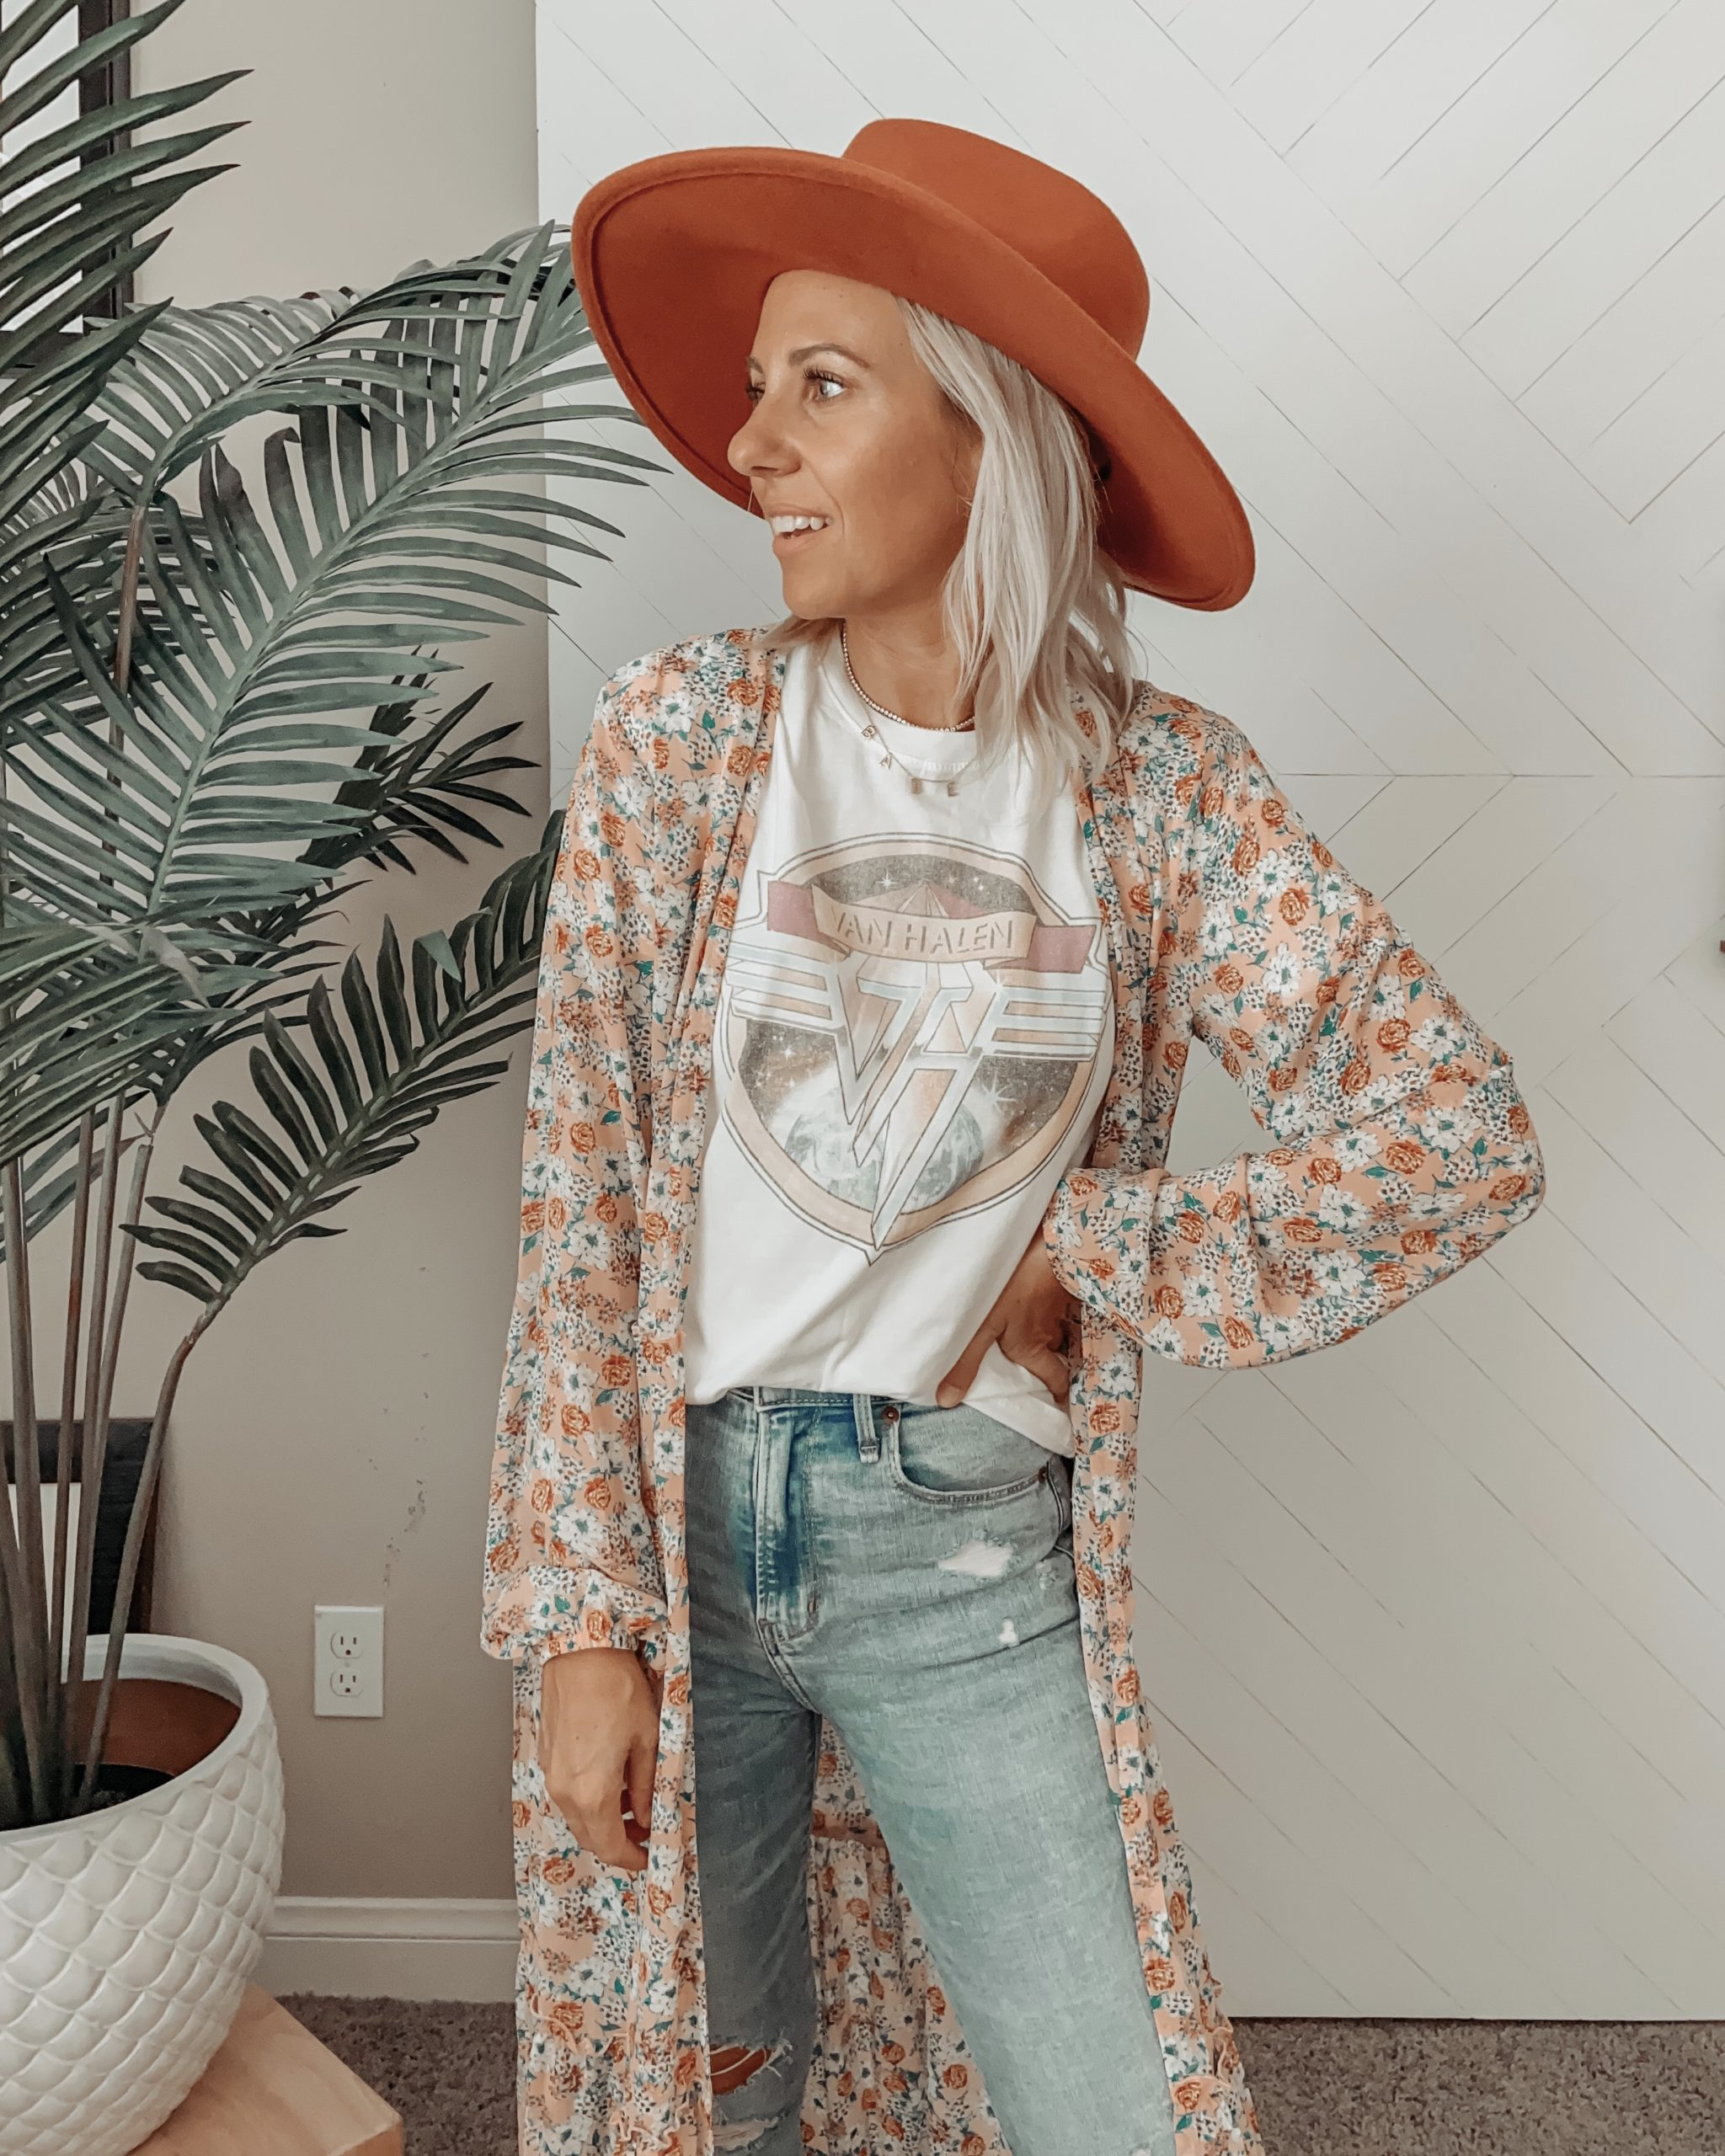 FALL HAT FINDS: SAVE VS SPLURGE + jaclyn De Leon Style- Sharing my latest hat favorites for Fall including must have splurges and great save options